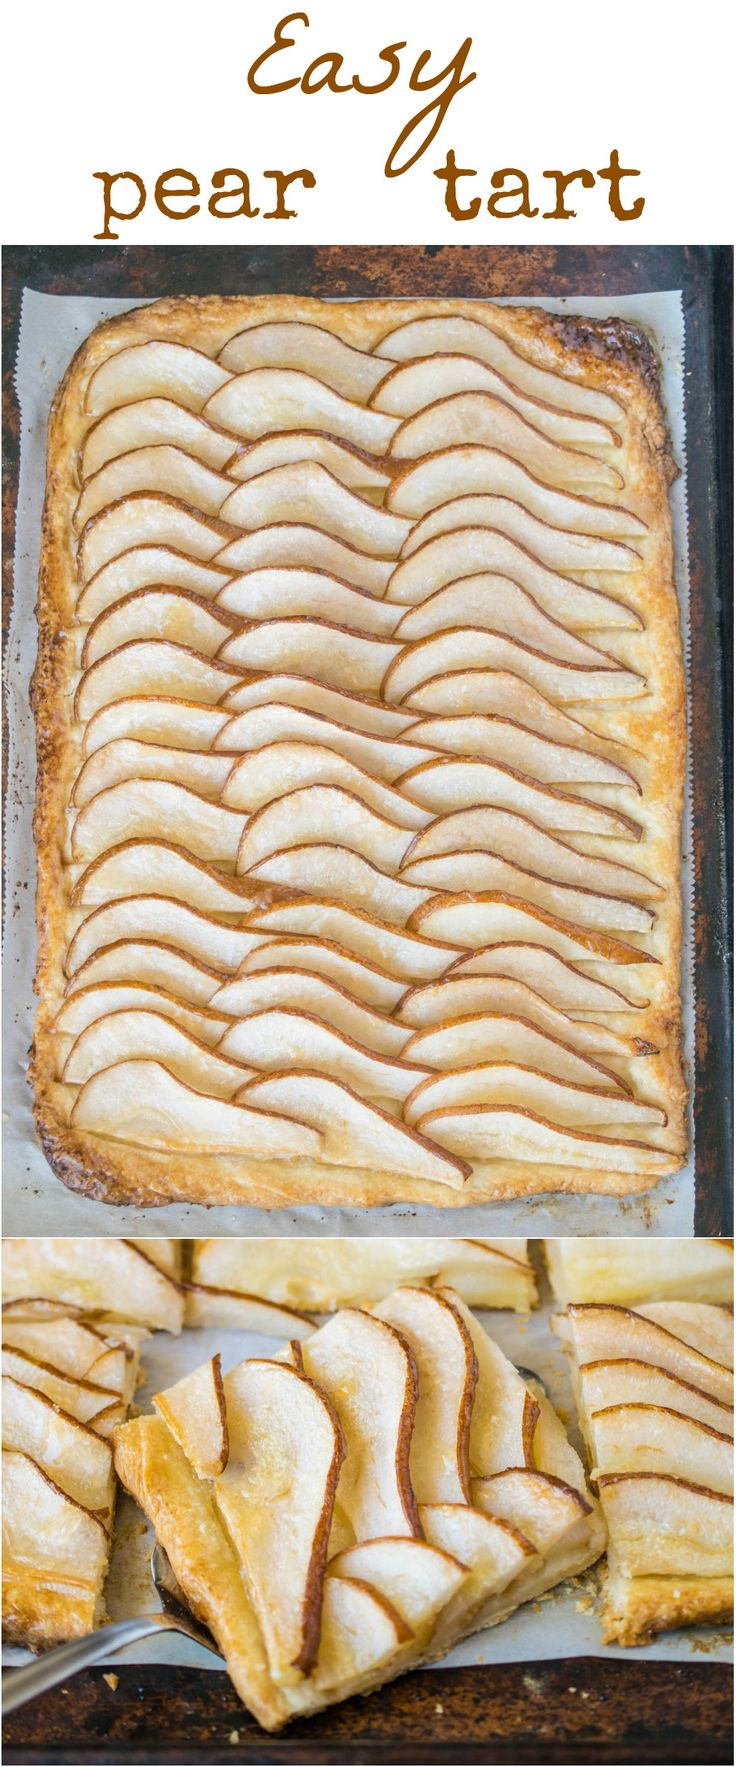 Easy pear tart. Juicy sliced pears are fanned onto flaky pastry, baked until golden brown, then brushed with pear preserves for a delicious glossy sheen.